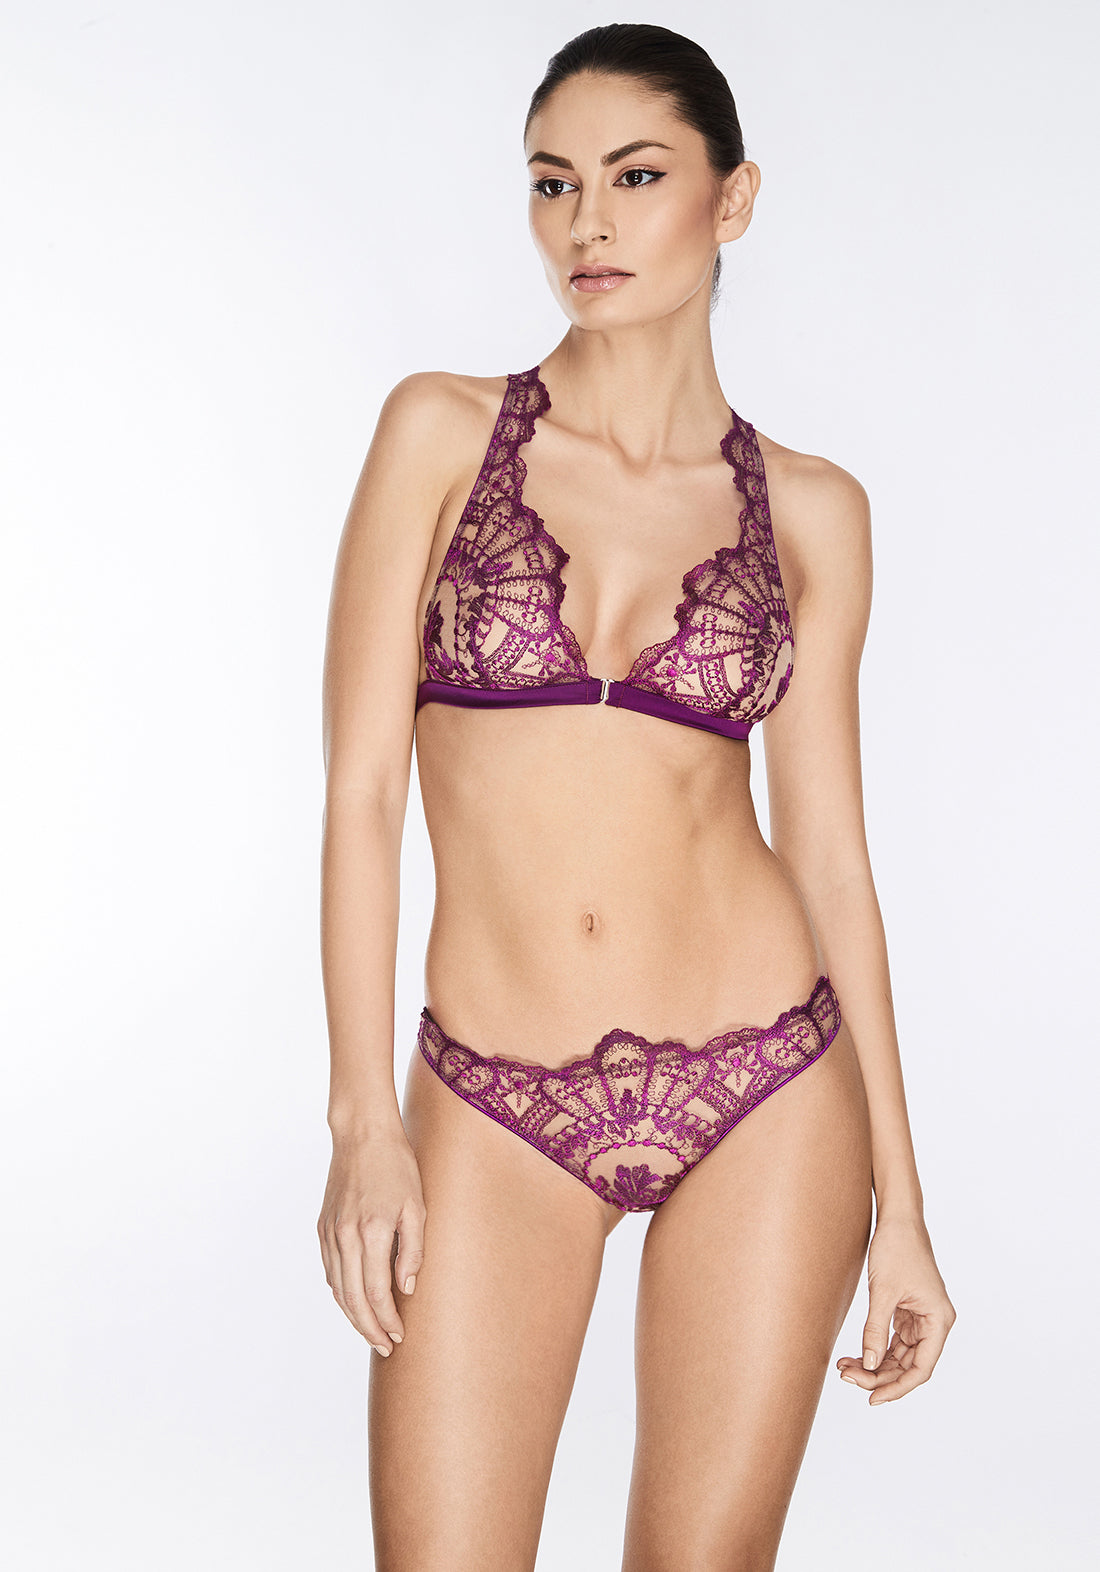 Coup de Foudre Racer Back Triangle Bra in Violet Sauvage